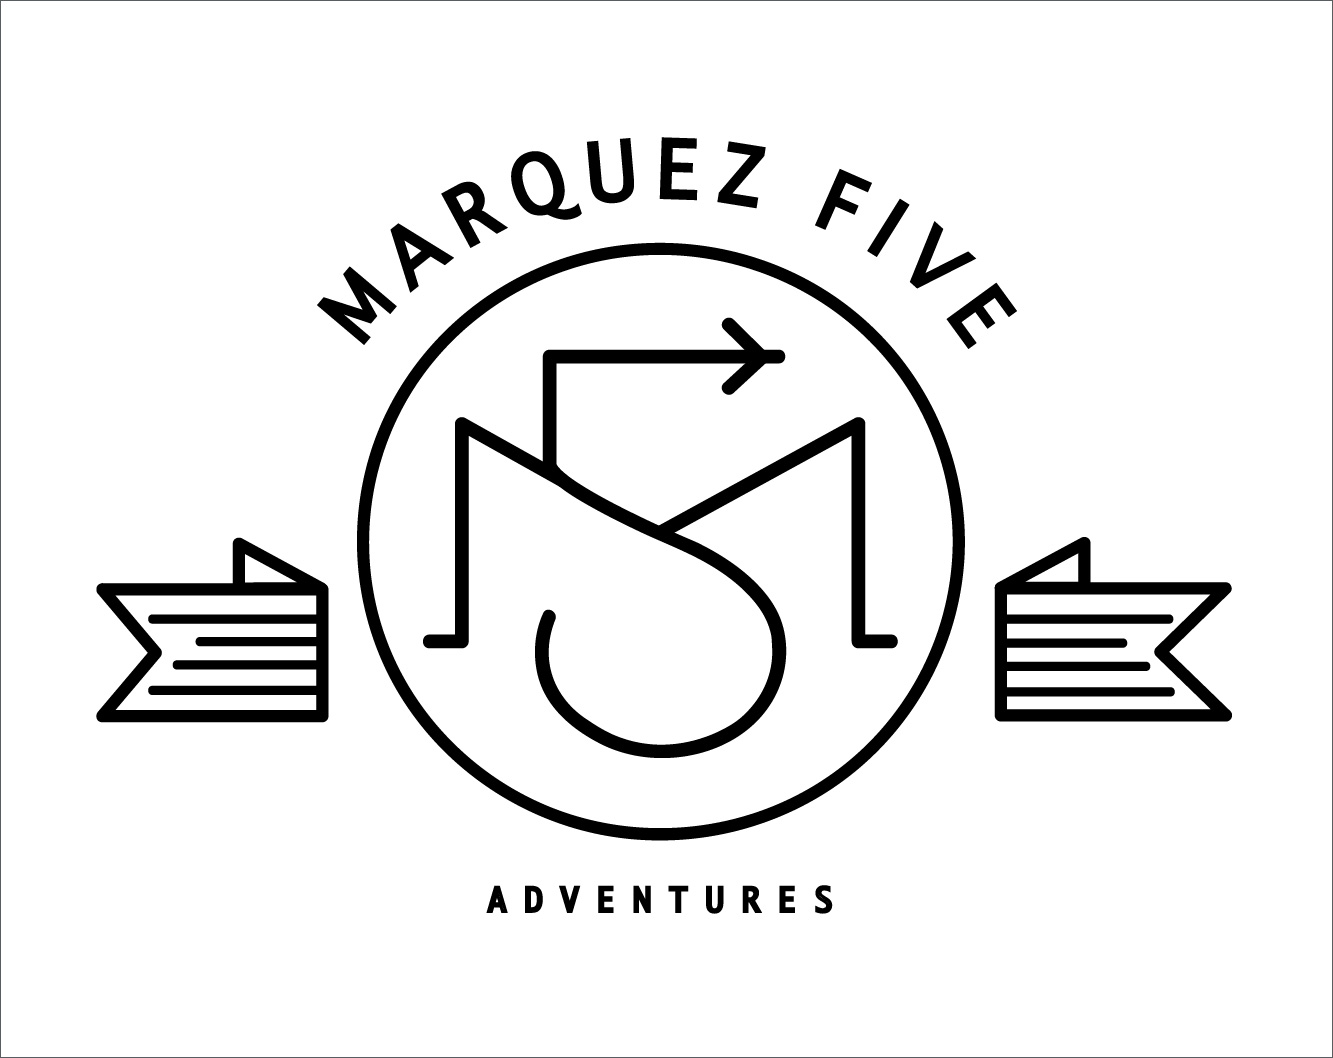 Marquez Five Adventures